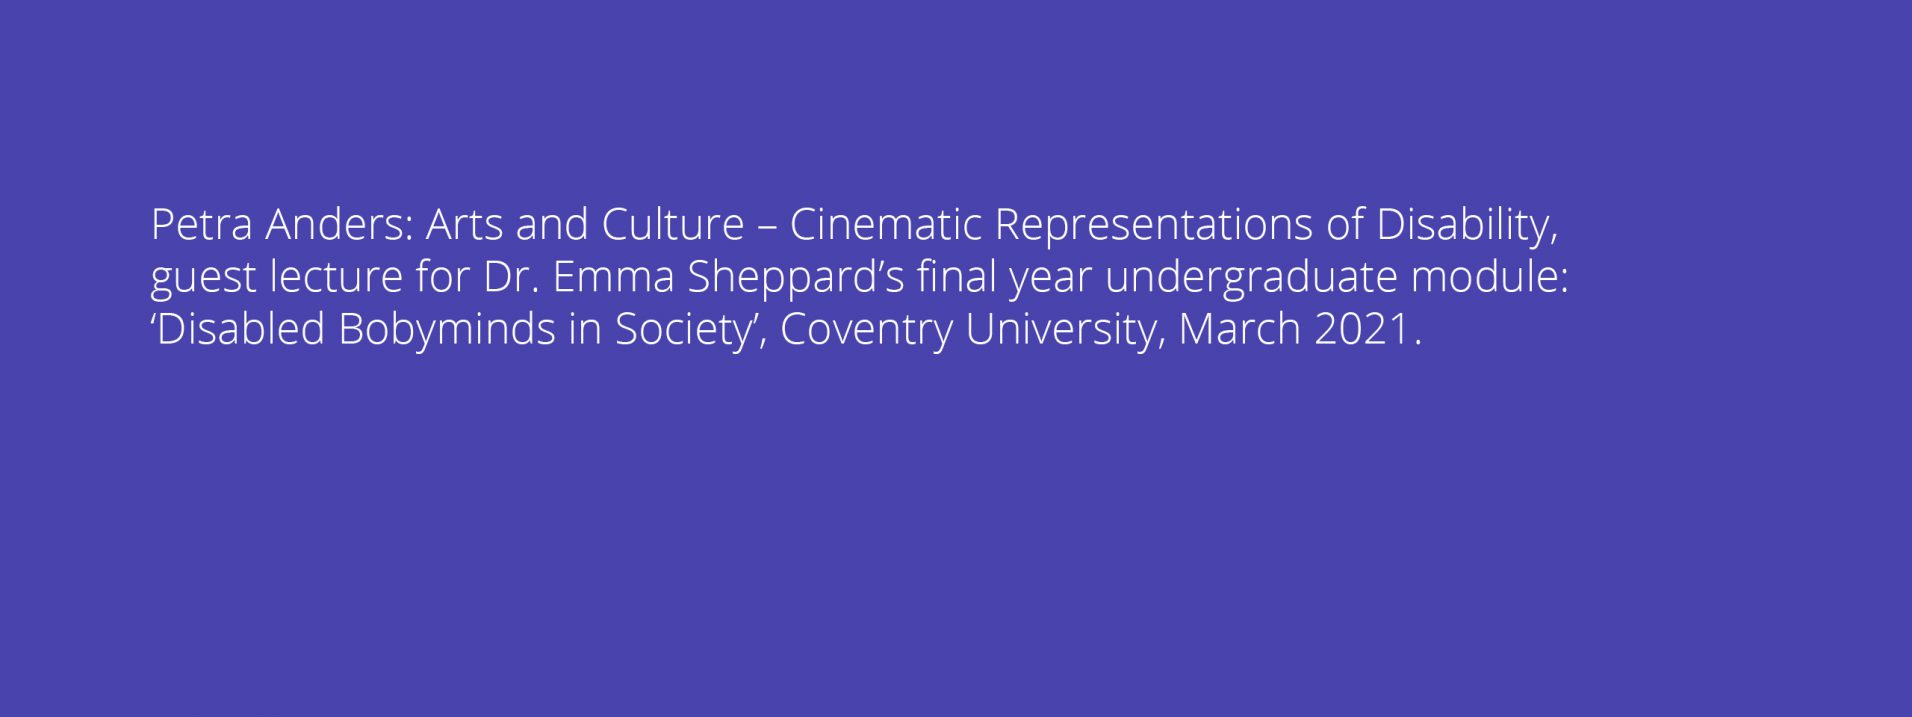 Petra Anders: Arts and Culture – Cinematic Representations of Disability, guest lecture for Dr. Emma Sheppard's final year undergraduate module: 'Disabled Bobyminds in Society', Coventry University, March 2021.